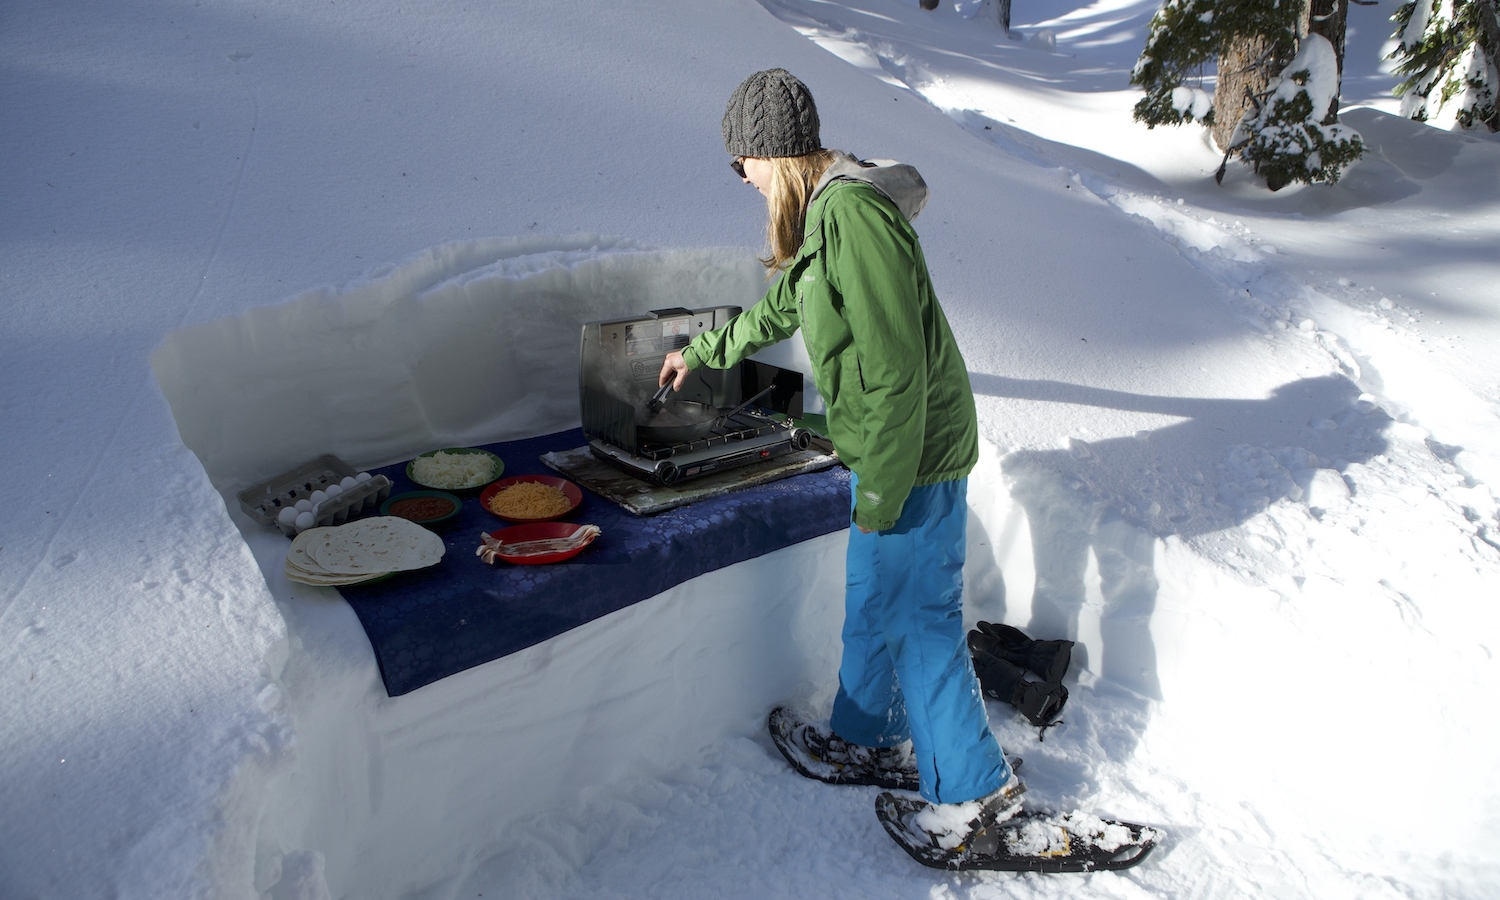 Cooking Breakfast on the Snow